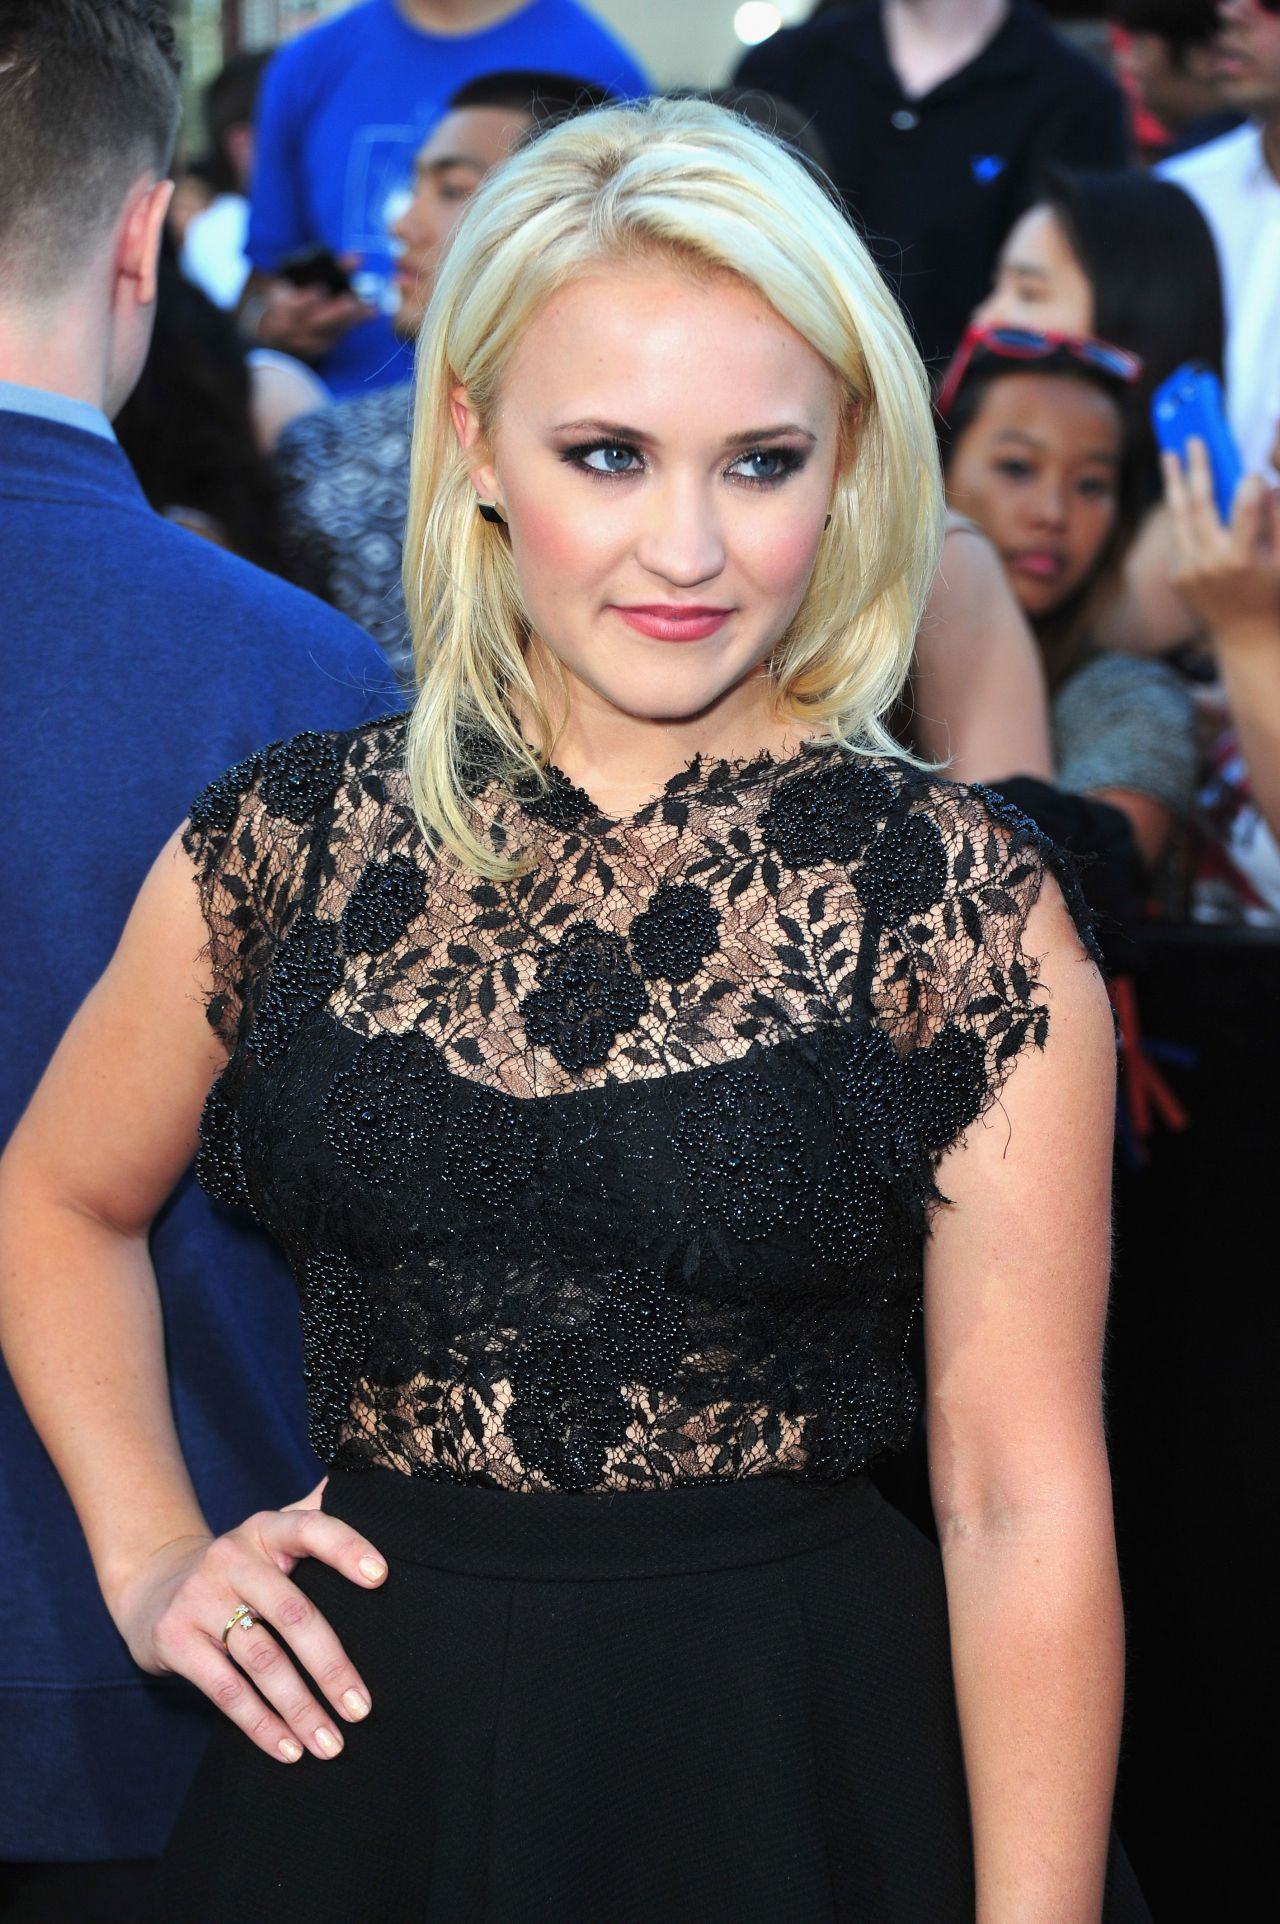 22 JUMP STREET Premiere in Westwood - Emily Osment